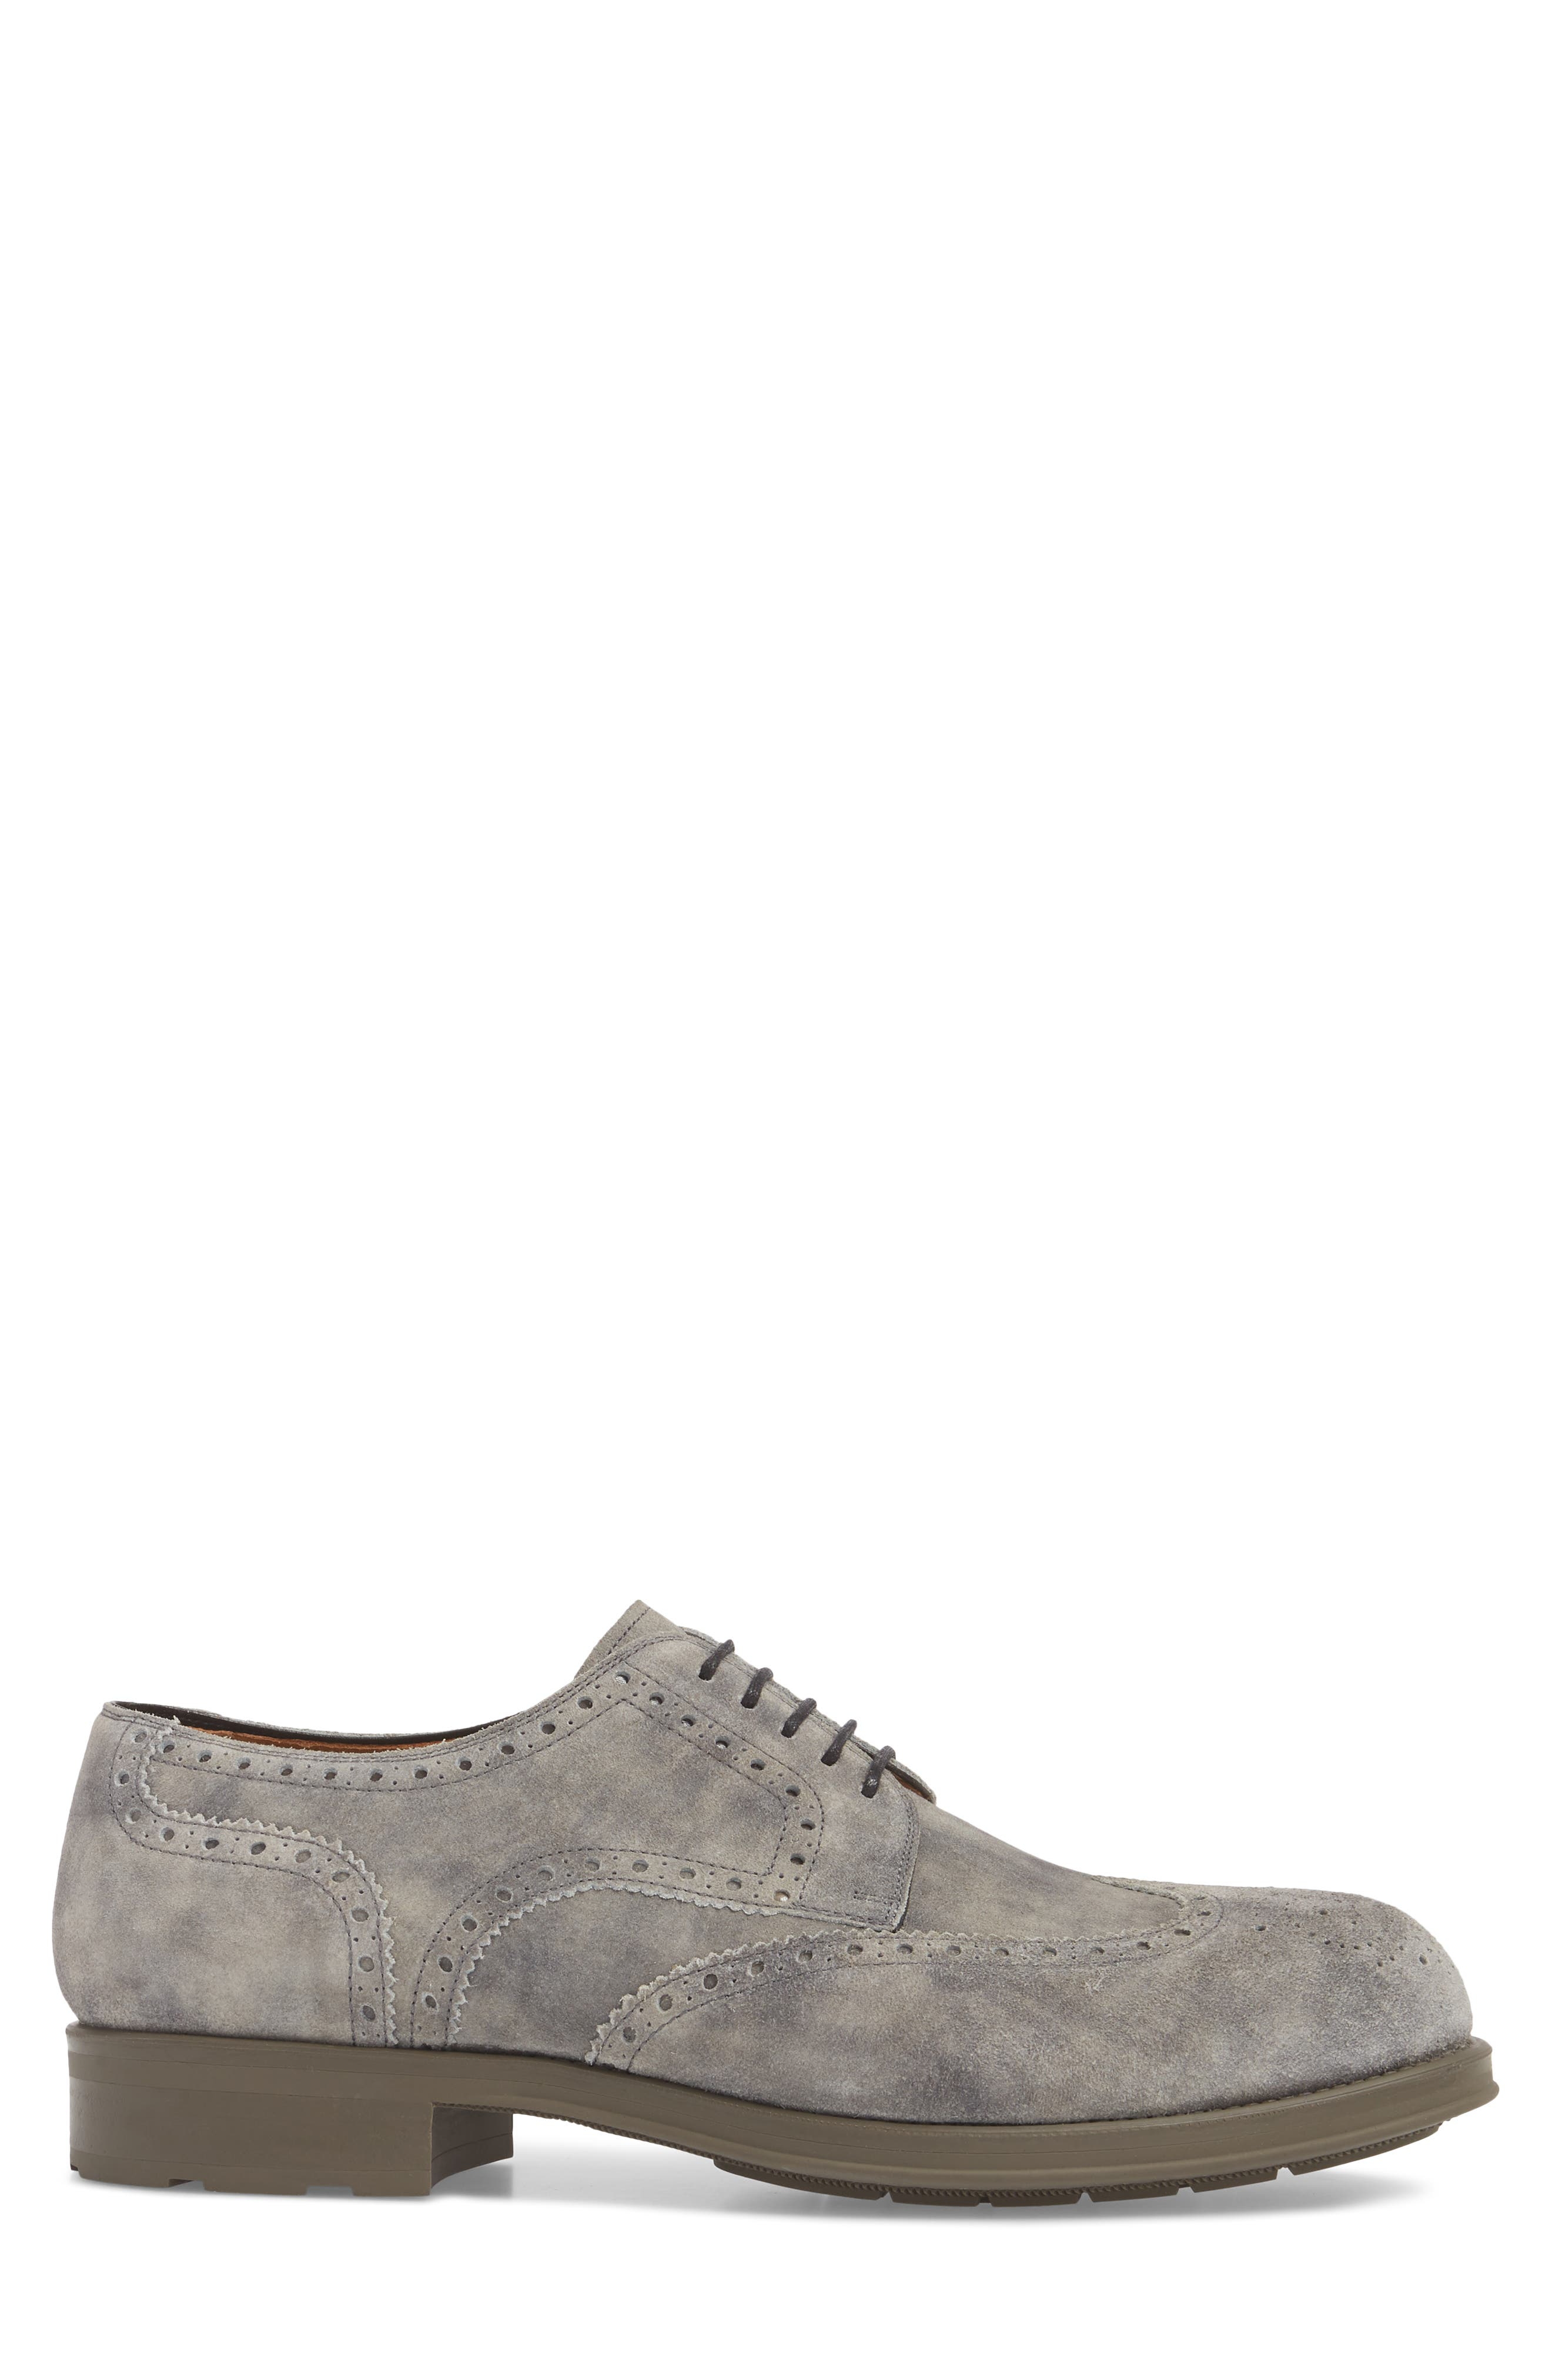 Tormo Wingtip,                             Alternate thumbnail 3, color,                             Grey Leather